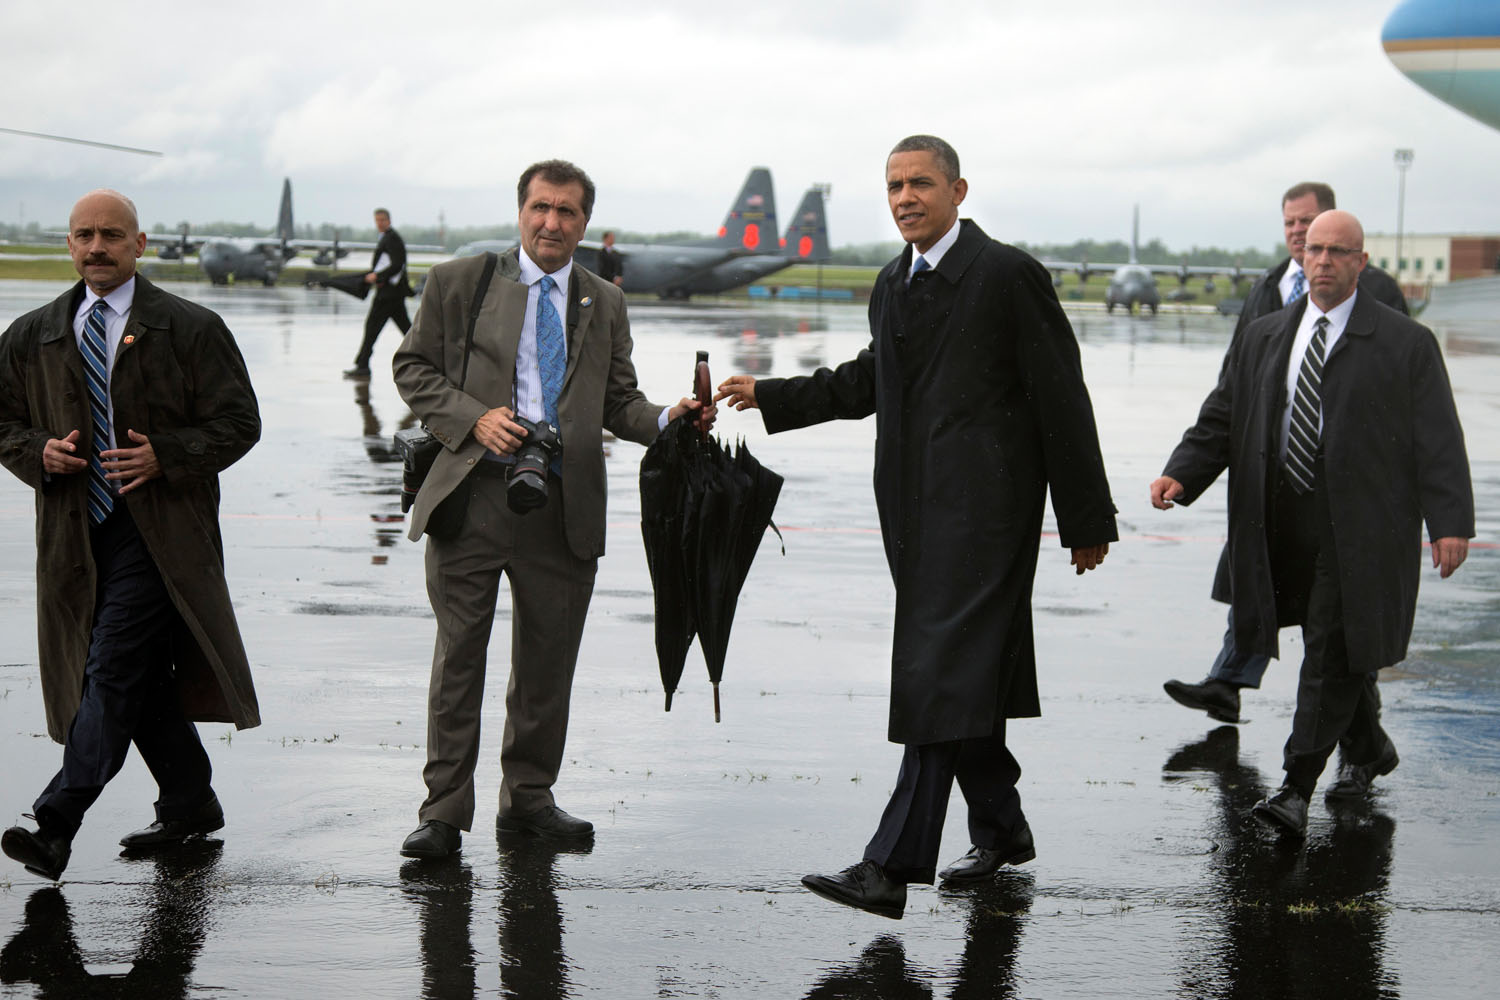 President Obama hands his umbrella to White House photographer Pete Souza before greeting a group of soldiers after arriving at Charlotte-Douglas International Airport in Charlotte, N.C., June 6, 2013.